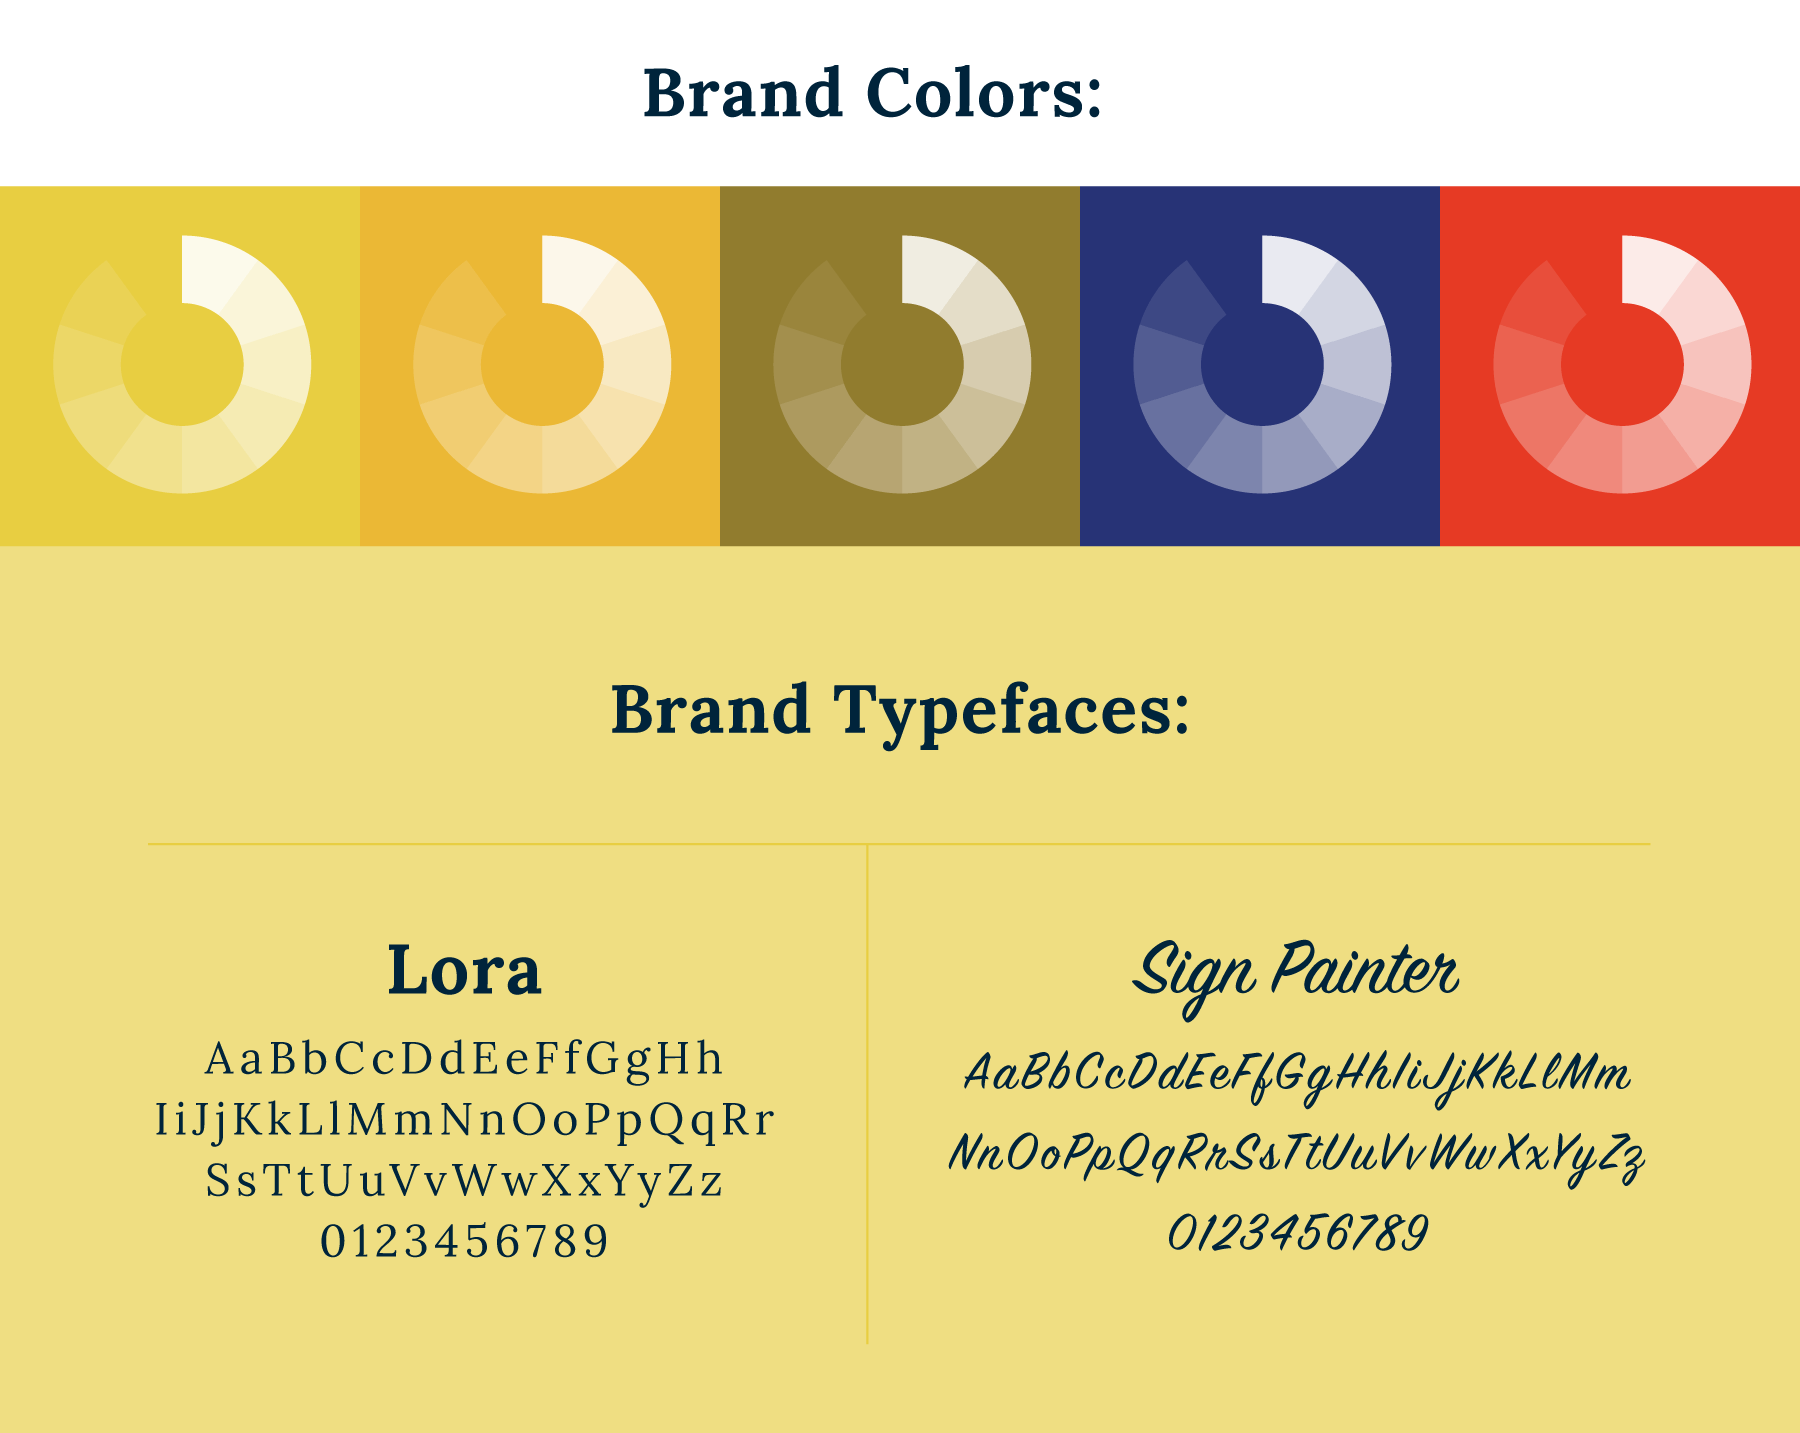 Chateau branding colors & typefaces